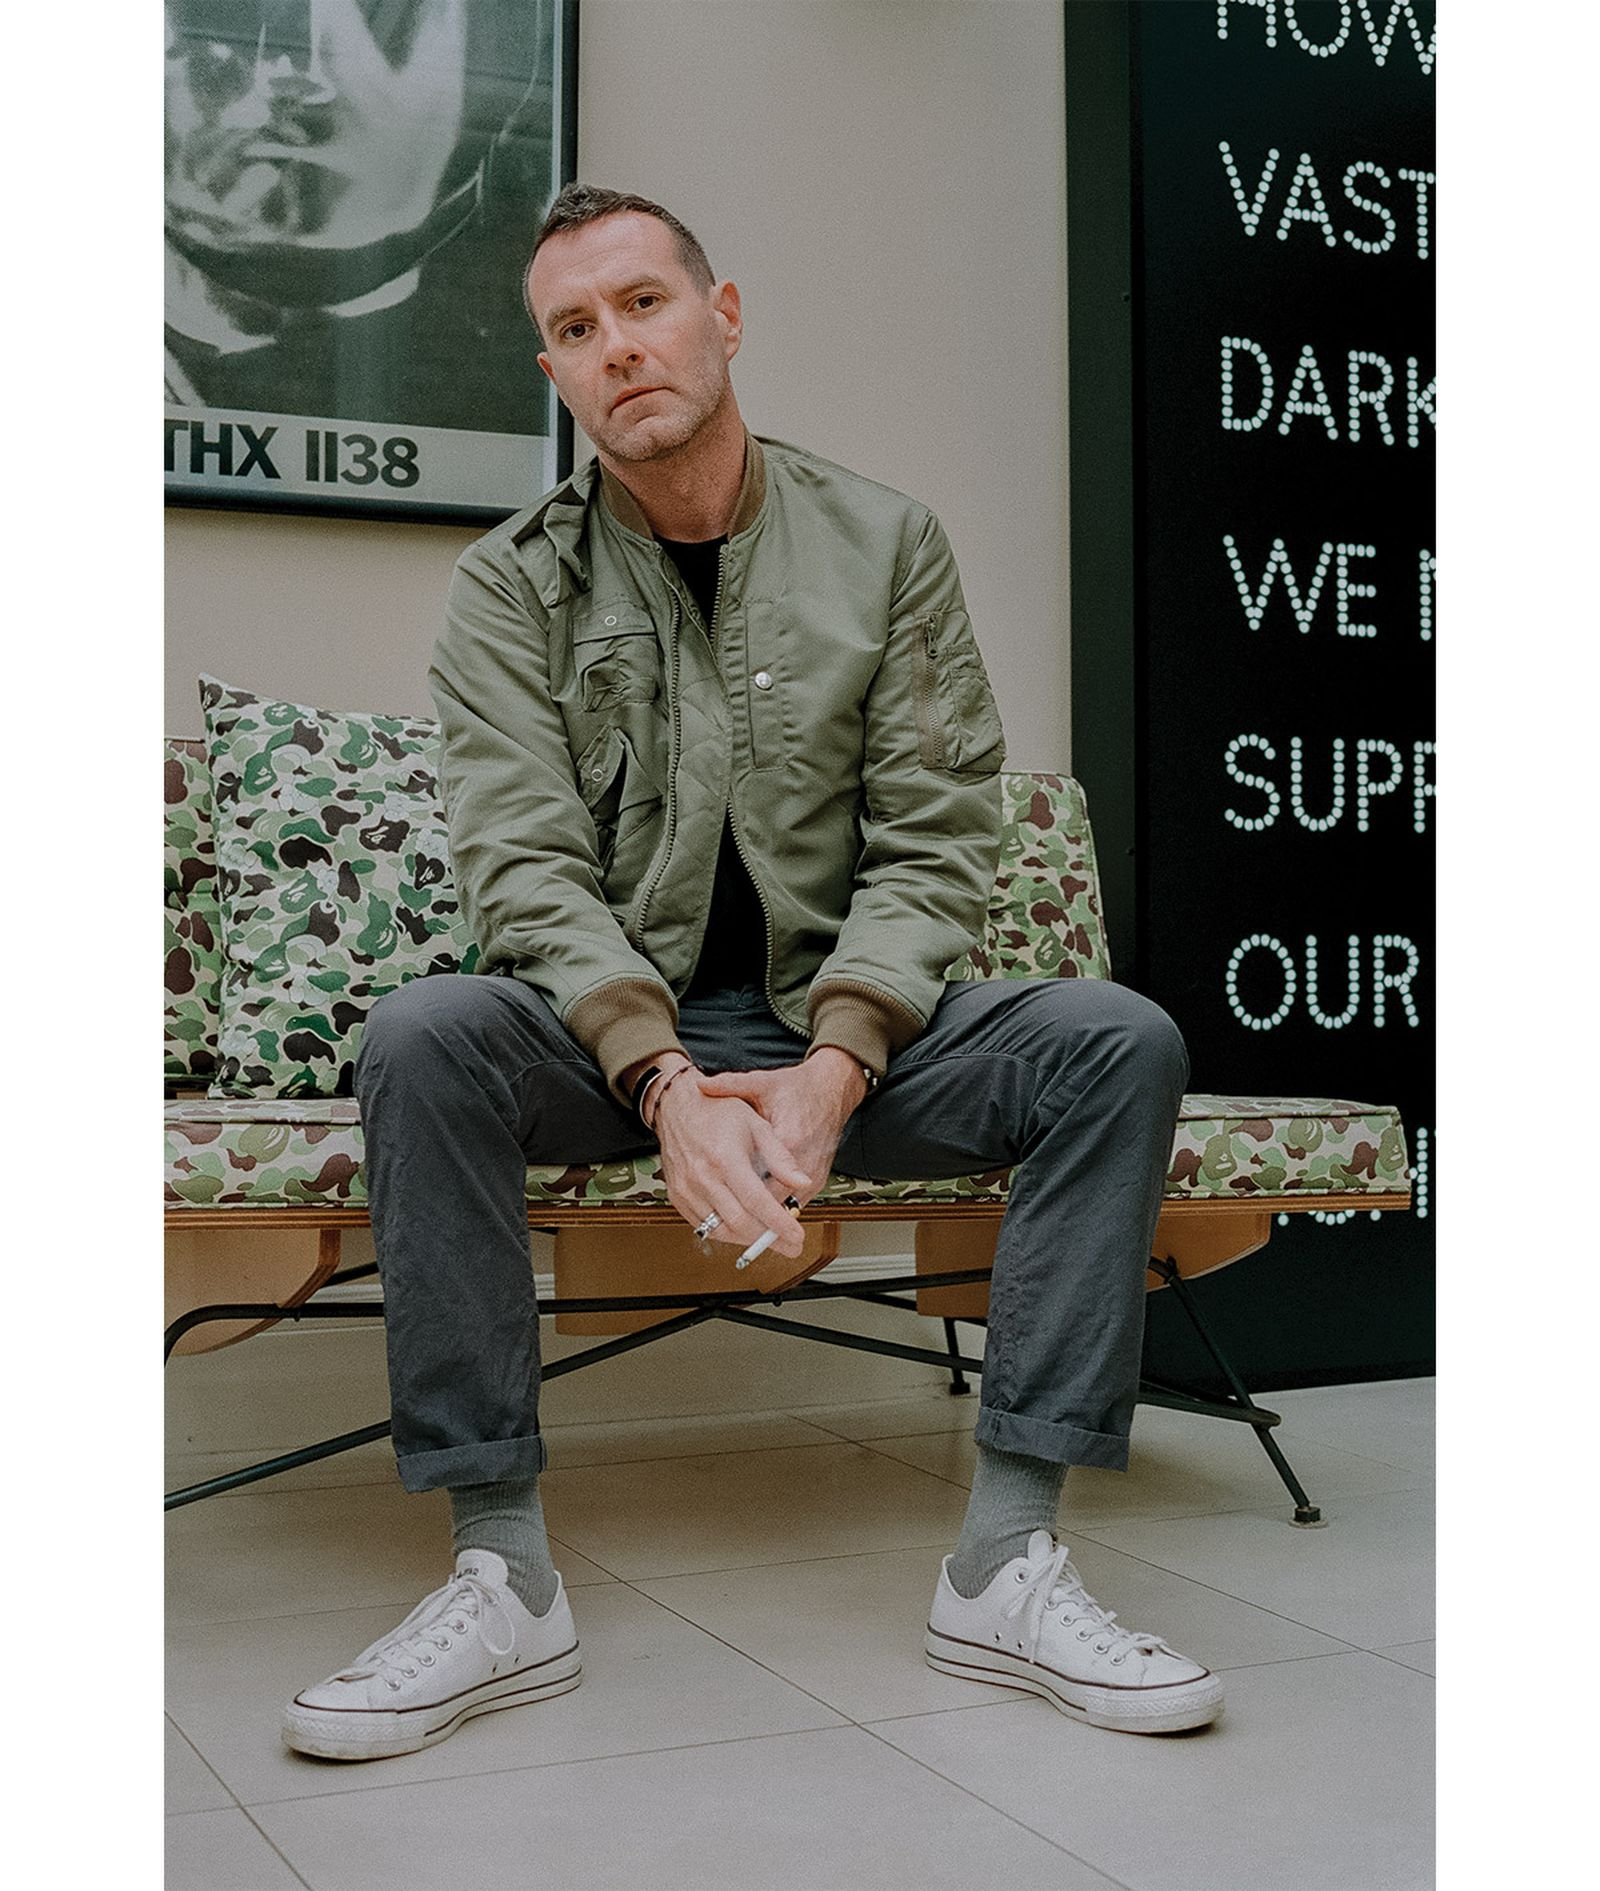 man unkle james lavelle Highsnobiety Magazine Issue 18